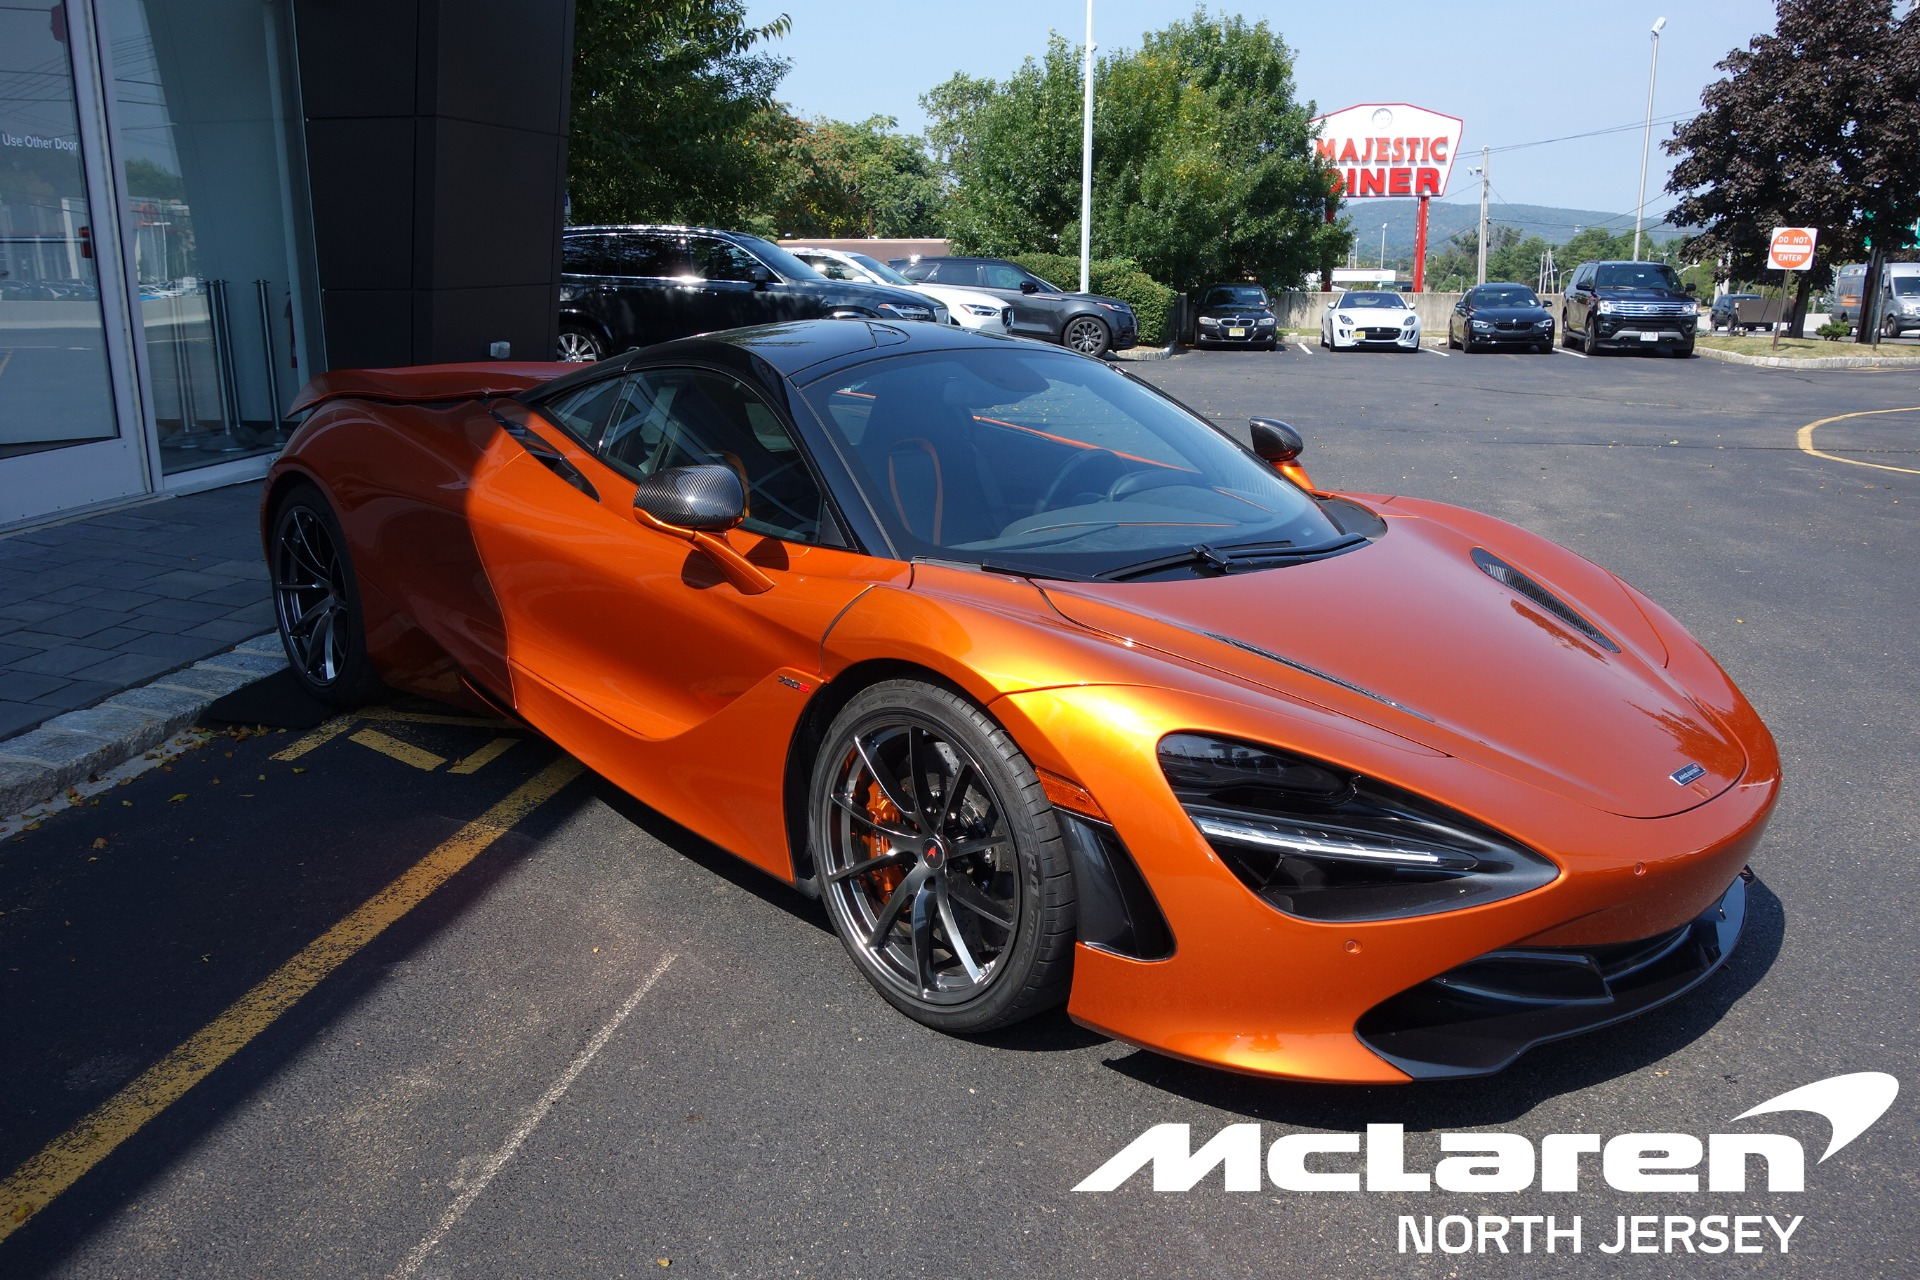 Used 2018 McLaren 720S Performance for sale $236,000 at McLaren North Jersey in Ramsey NJ 07446 1